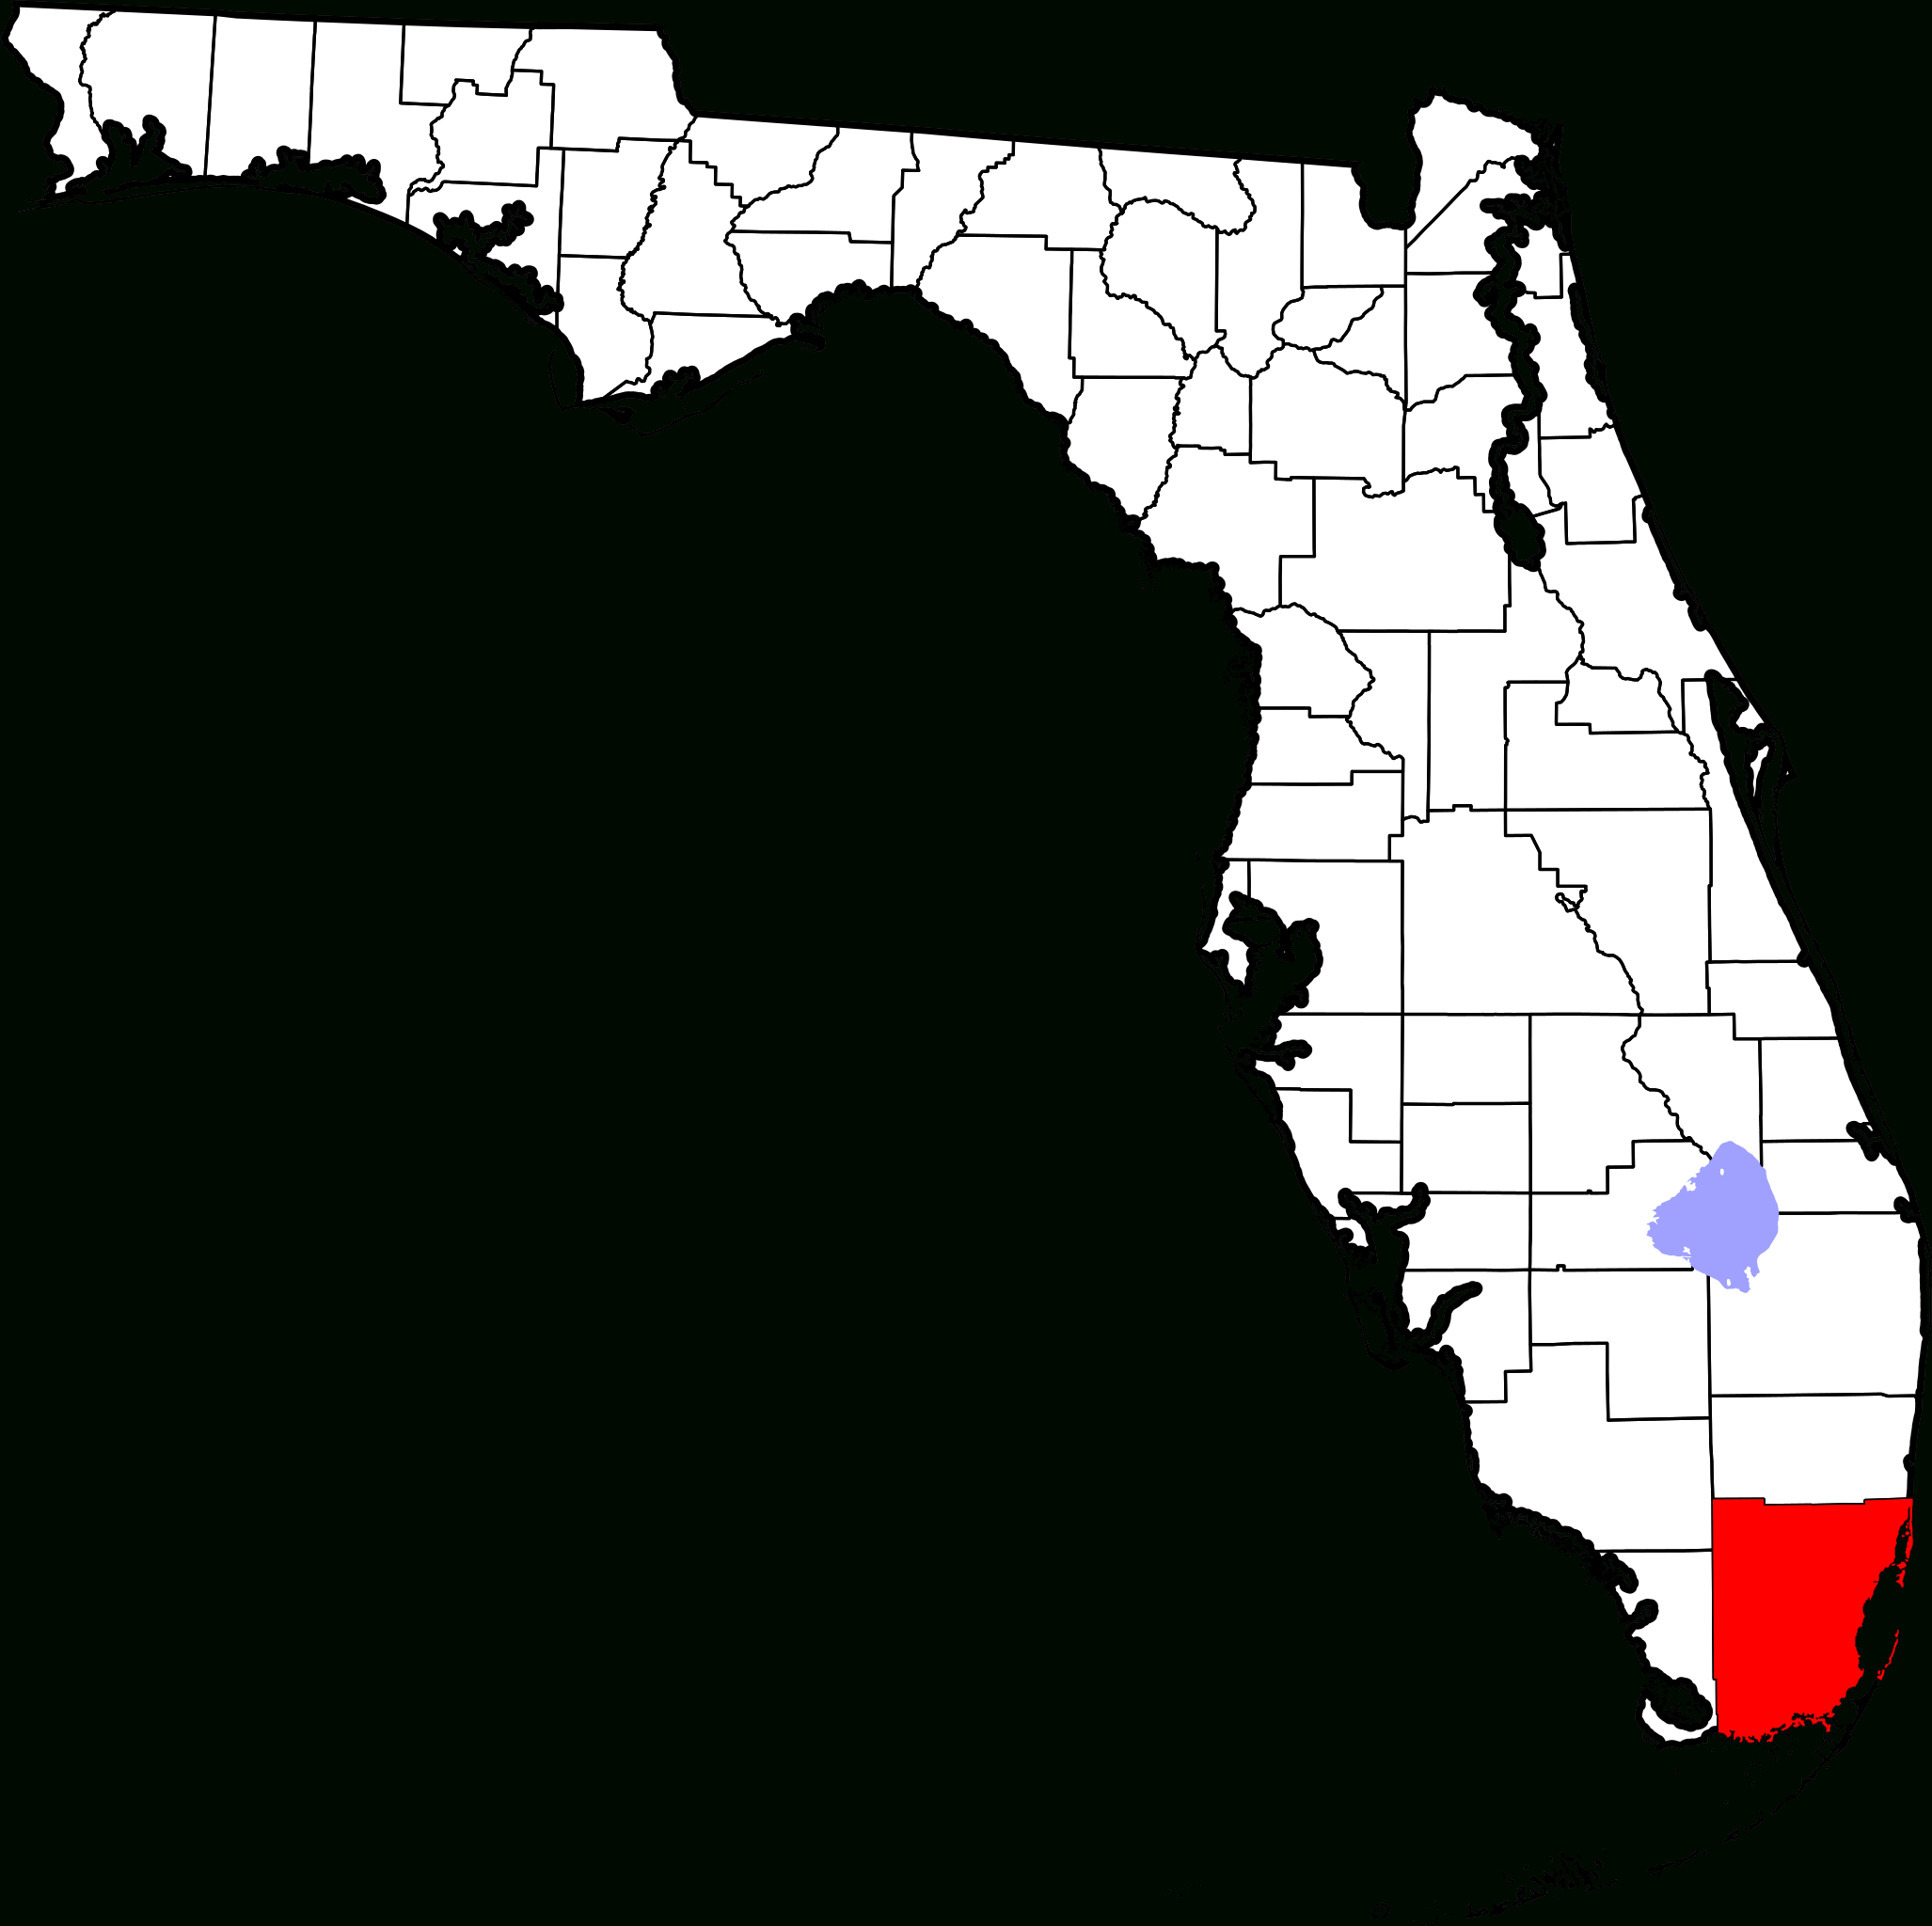 File:map Of Florida Highlighting Miami-Dade County.svg - Wikipedia - Map Of Florida Showing Dade City